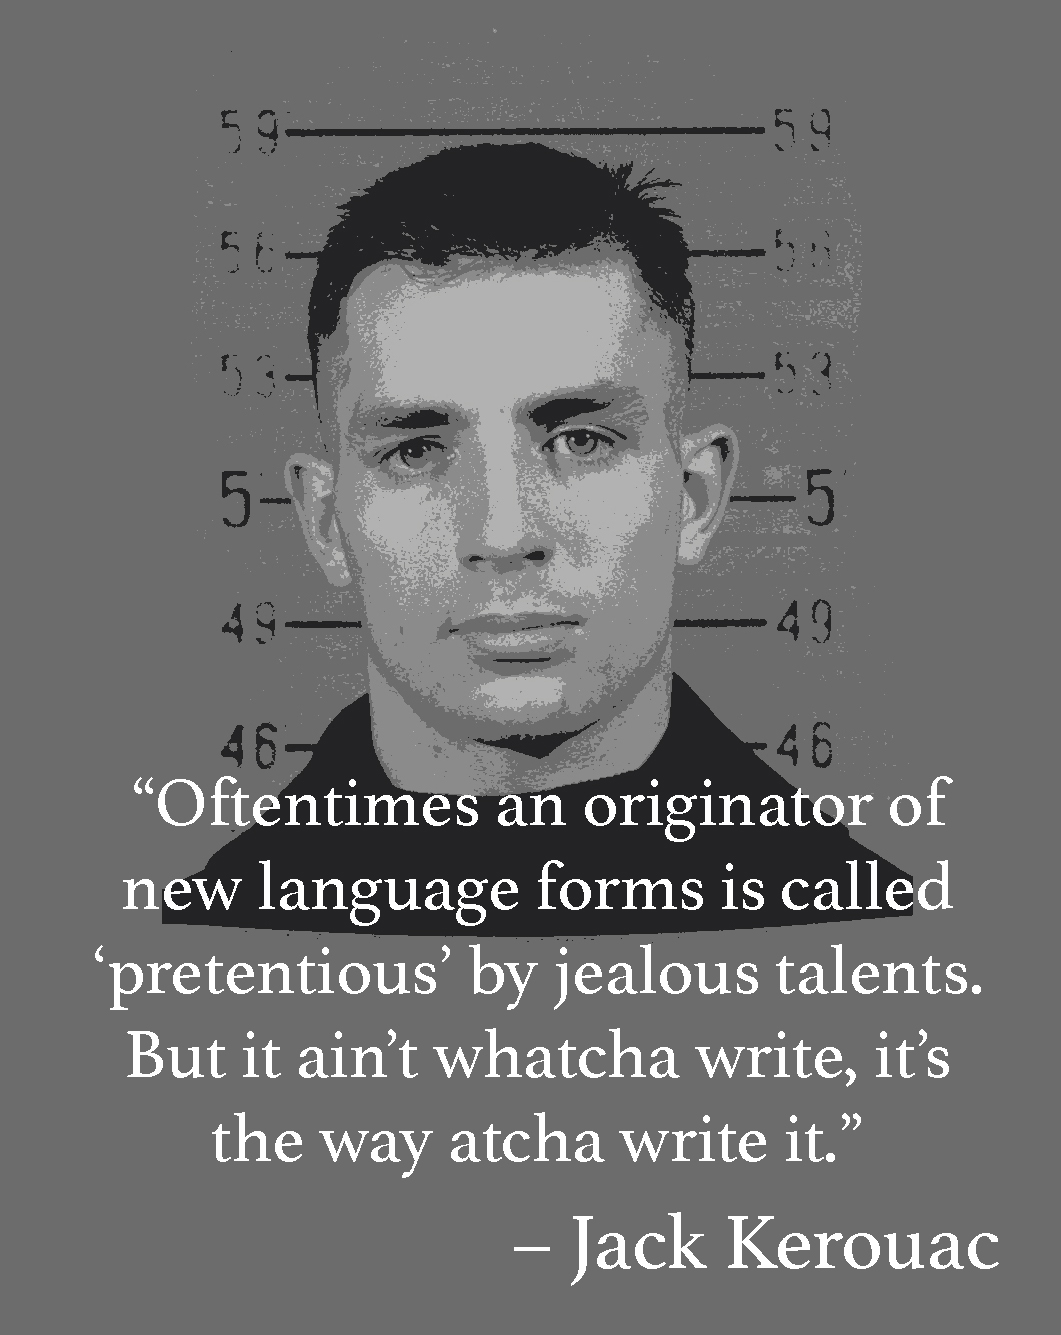 jack kerouac critical essay Fifty years ago jack kerouac's dazzling novel on the road became the blueprint for the beat generation and shaped america's youth culture for decades it influenced.